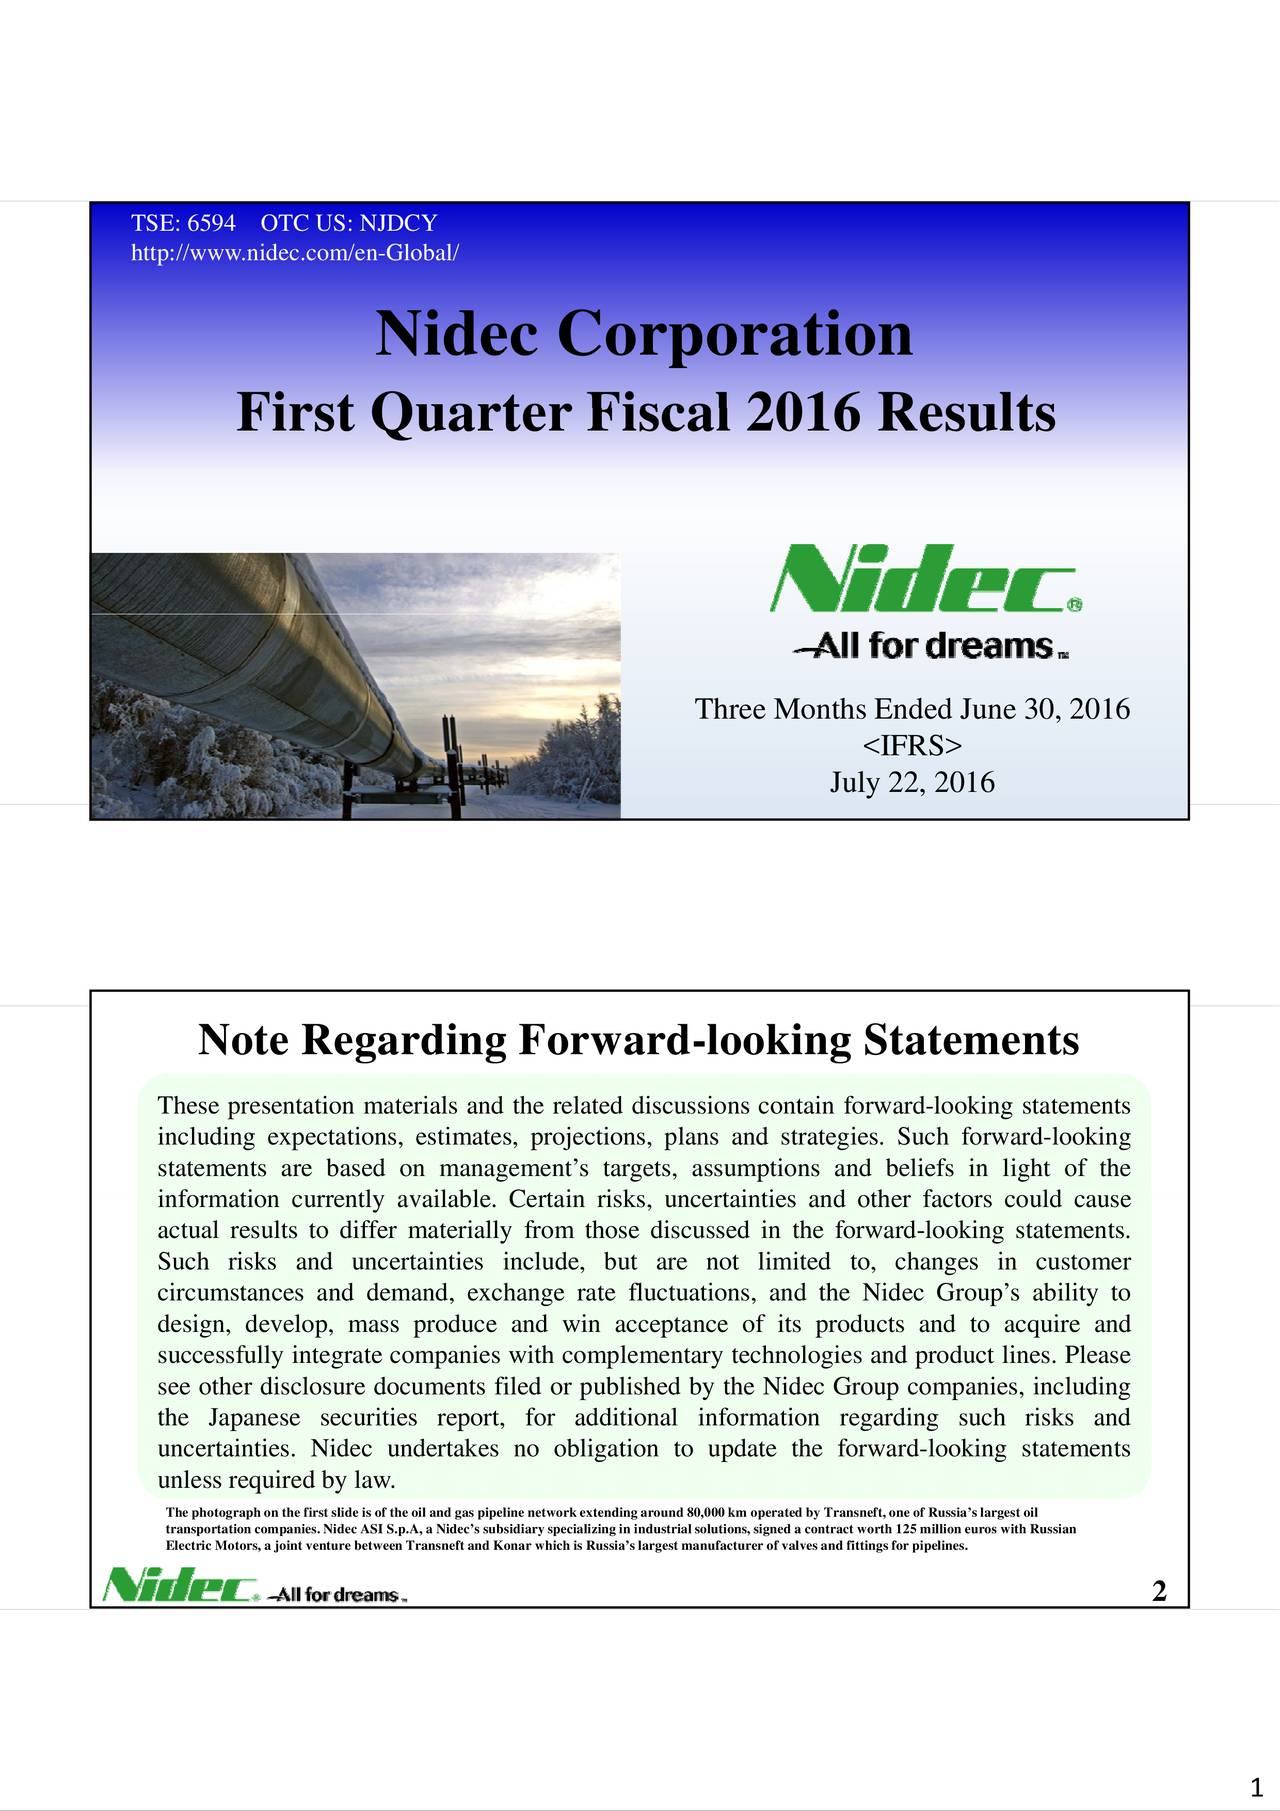 http://www.nidec.com/en-Global/ Nidec Corporation Fiirsstt Qu uaarrtterr FFi iscaall 22001166 RRe essuulltss Three Months Ended June 30, 2016 <IFRS> July 22, 2016 Note Regarding Forward-looking Statements These presentation materials and the related discussions contain forward-looking statements including expectations, estimates, projections, plans and strategies. Such forward-looking statements are based on managements targets, assumptions and beliefs in light of the nformaion crretlyavalabe.Ceetan isks,unerainiesand oher acorscould ause actual results to differ materially from those discussed in the forward-looking statements. Such risks and uncertainties include, but are not limited to, changes in customer circumstances and demand, exchange rate fluctuations, and the Nidec Groups ability to design, develop, mass produce and win acceptance of its products and to acquire and successfully integrate companies with complementary technologies and product lines. Please see other disclosure documents filed or published by the Nidec Group companies, including uncertainties. Nidec undertakes no obligation to update the forward-looking statements unless required by law. The photograph on the first slide is of the oil and gas pipeline network extending around 80,000 km operated by Transneft, one of Russias largest oil Electric Motors, a joint venture between Transneft and Konar which is Russias largest manufacturer of valves and fittings for ppielines. euros with Russian 2